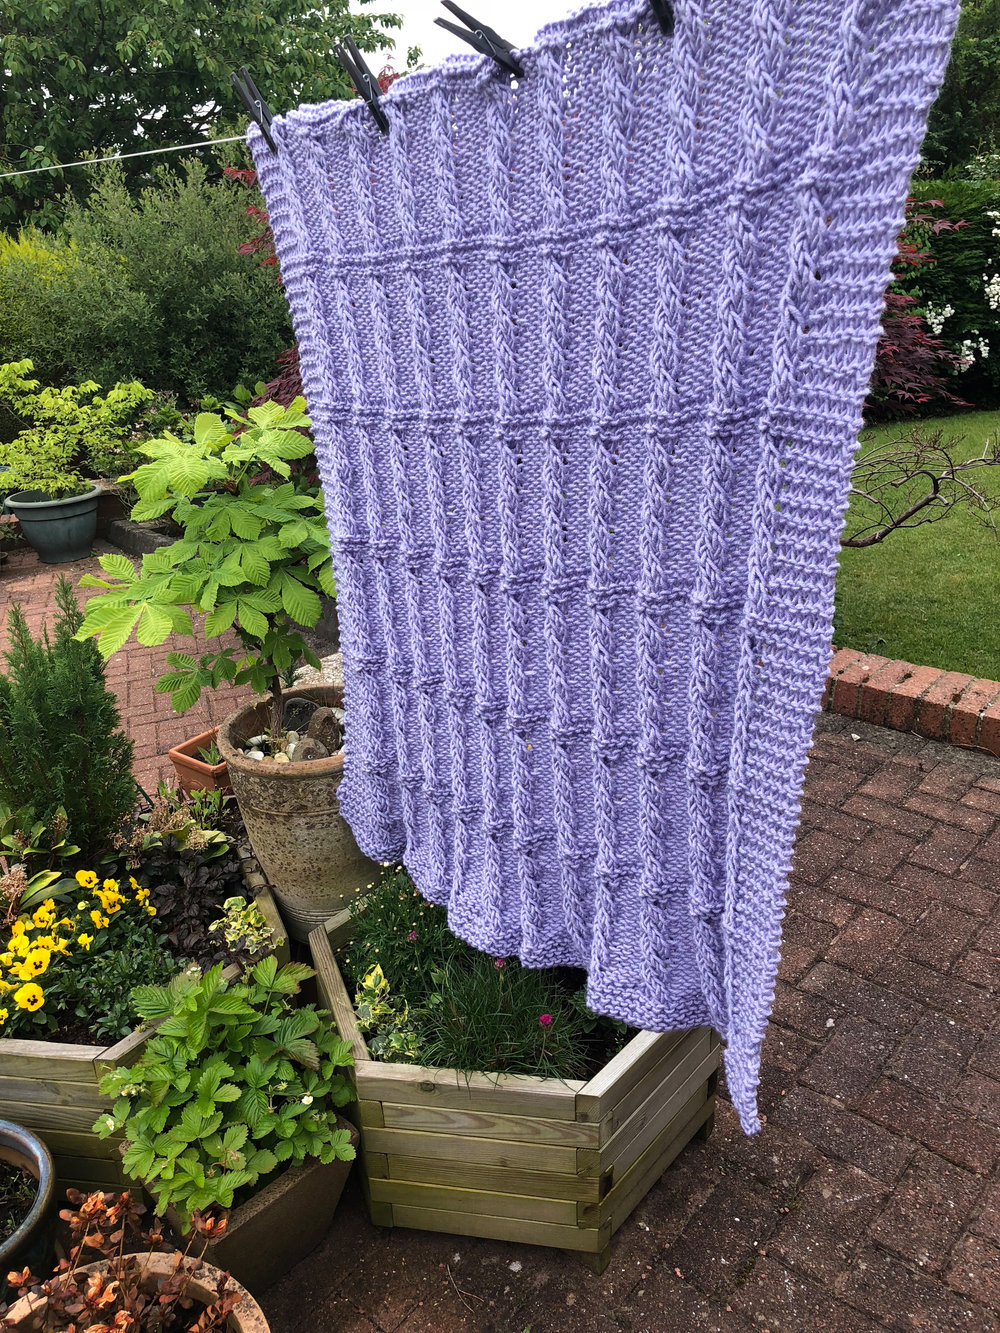 Lupin Blanket - Cable knitting pattern